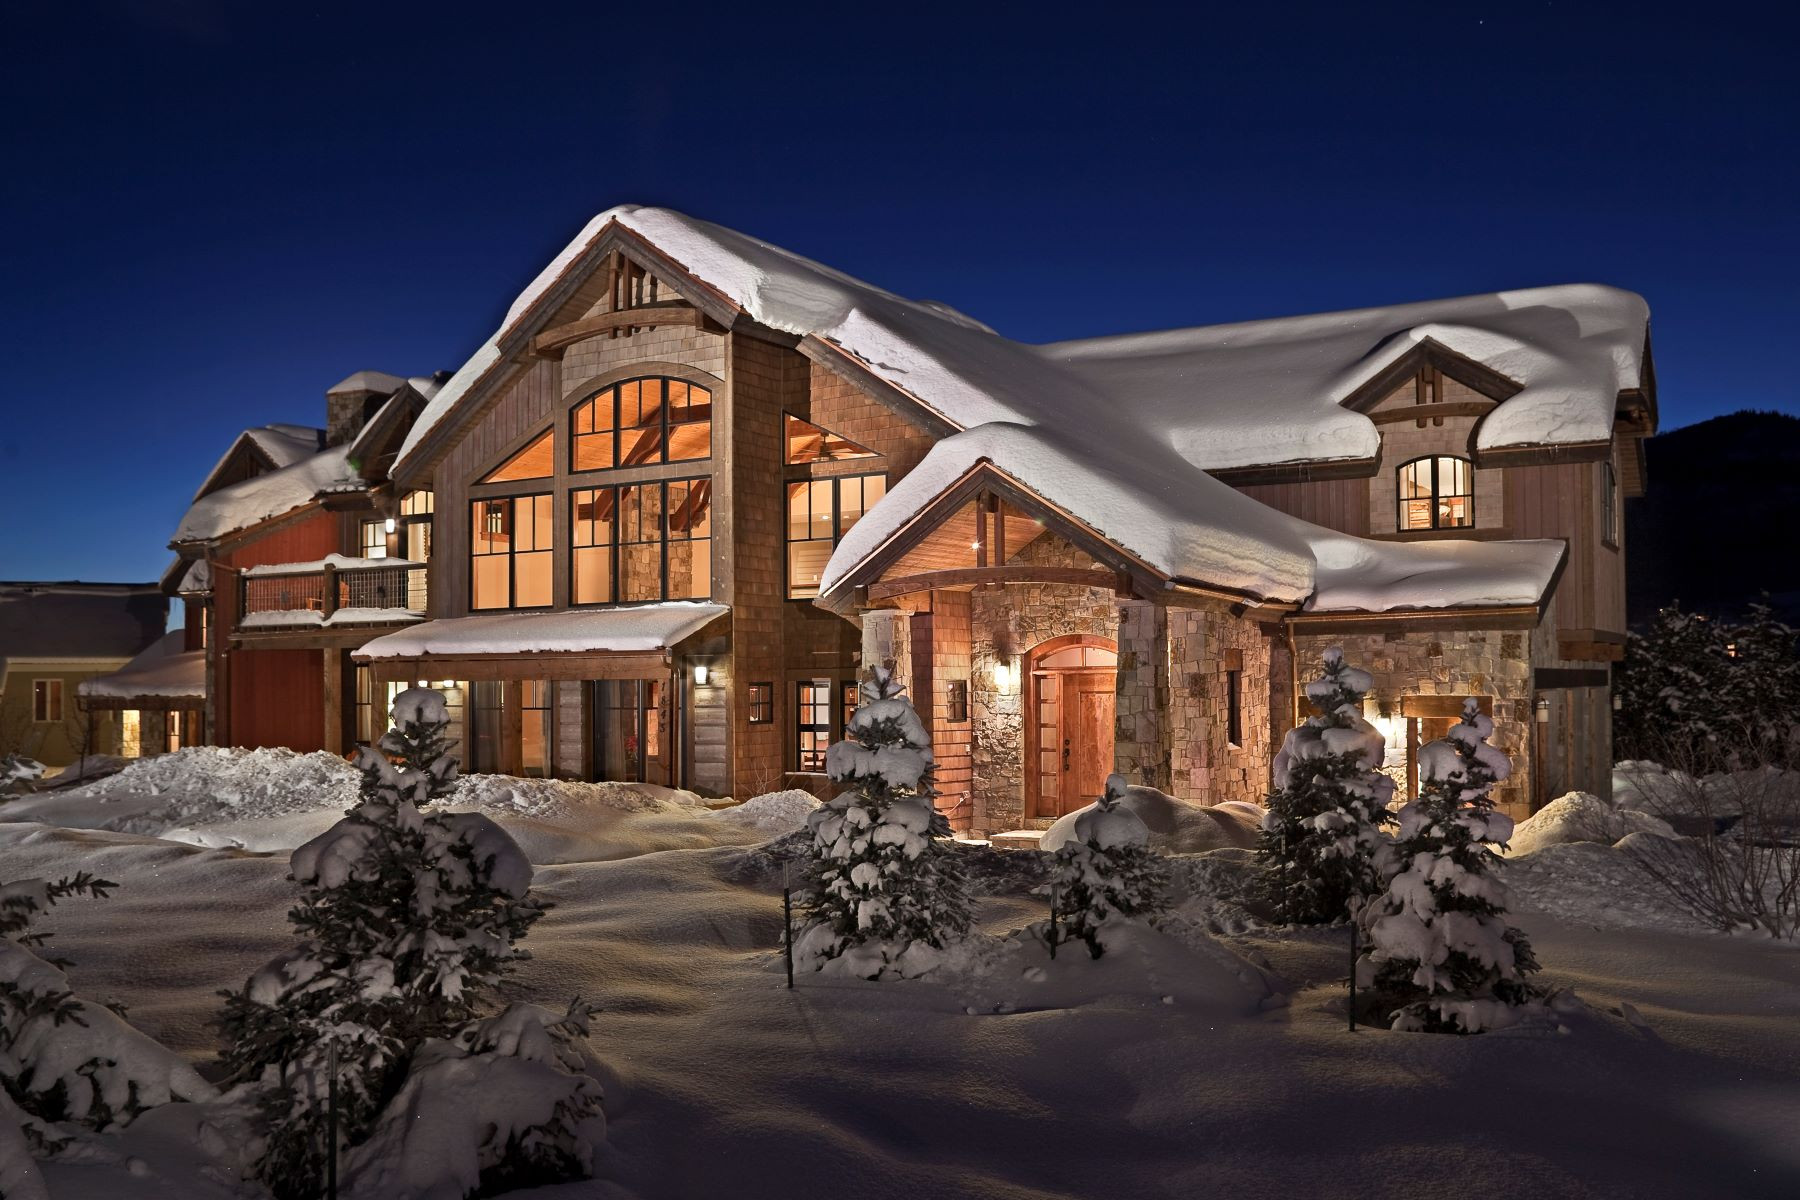 Single Family Home for Sale at Dramatic Views. Sophisticated Interior. 1845 Steamboat Blvd Steamboat Springs, Colorado 80487 United States